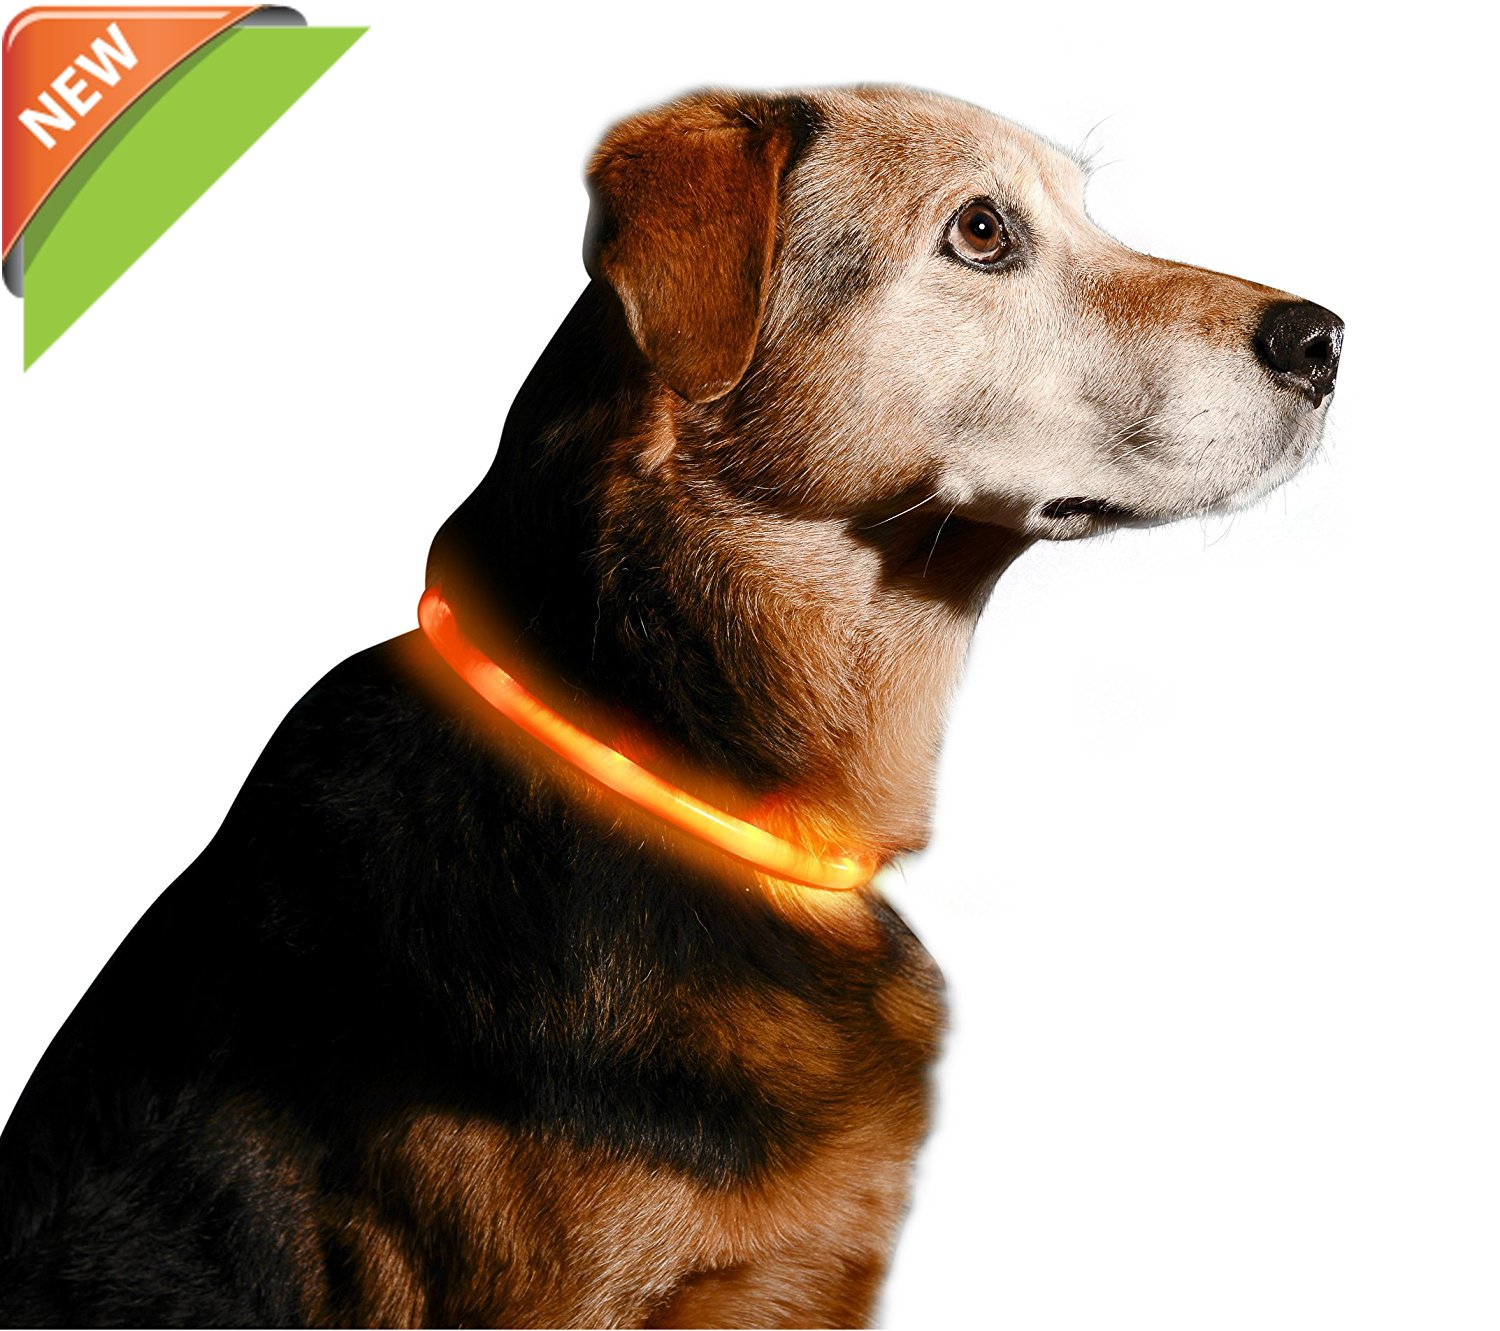 LED Dog Collar, USB Rechargeable Waterproof Safety Pet Dog Collar Light One Size Fits All USB Rechargeable Waterproof Safety Pet Dog Collar Light One Size Fits All (red) HOWOYOUNG